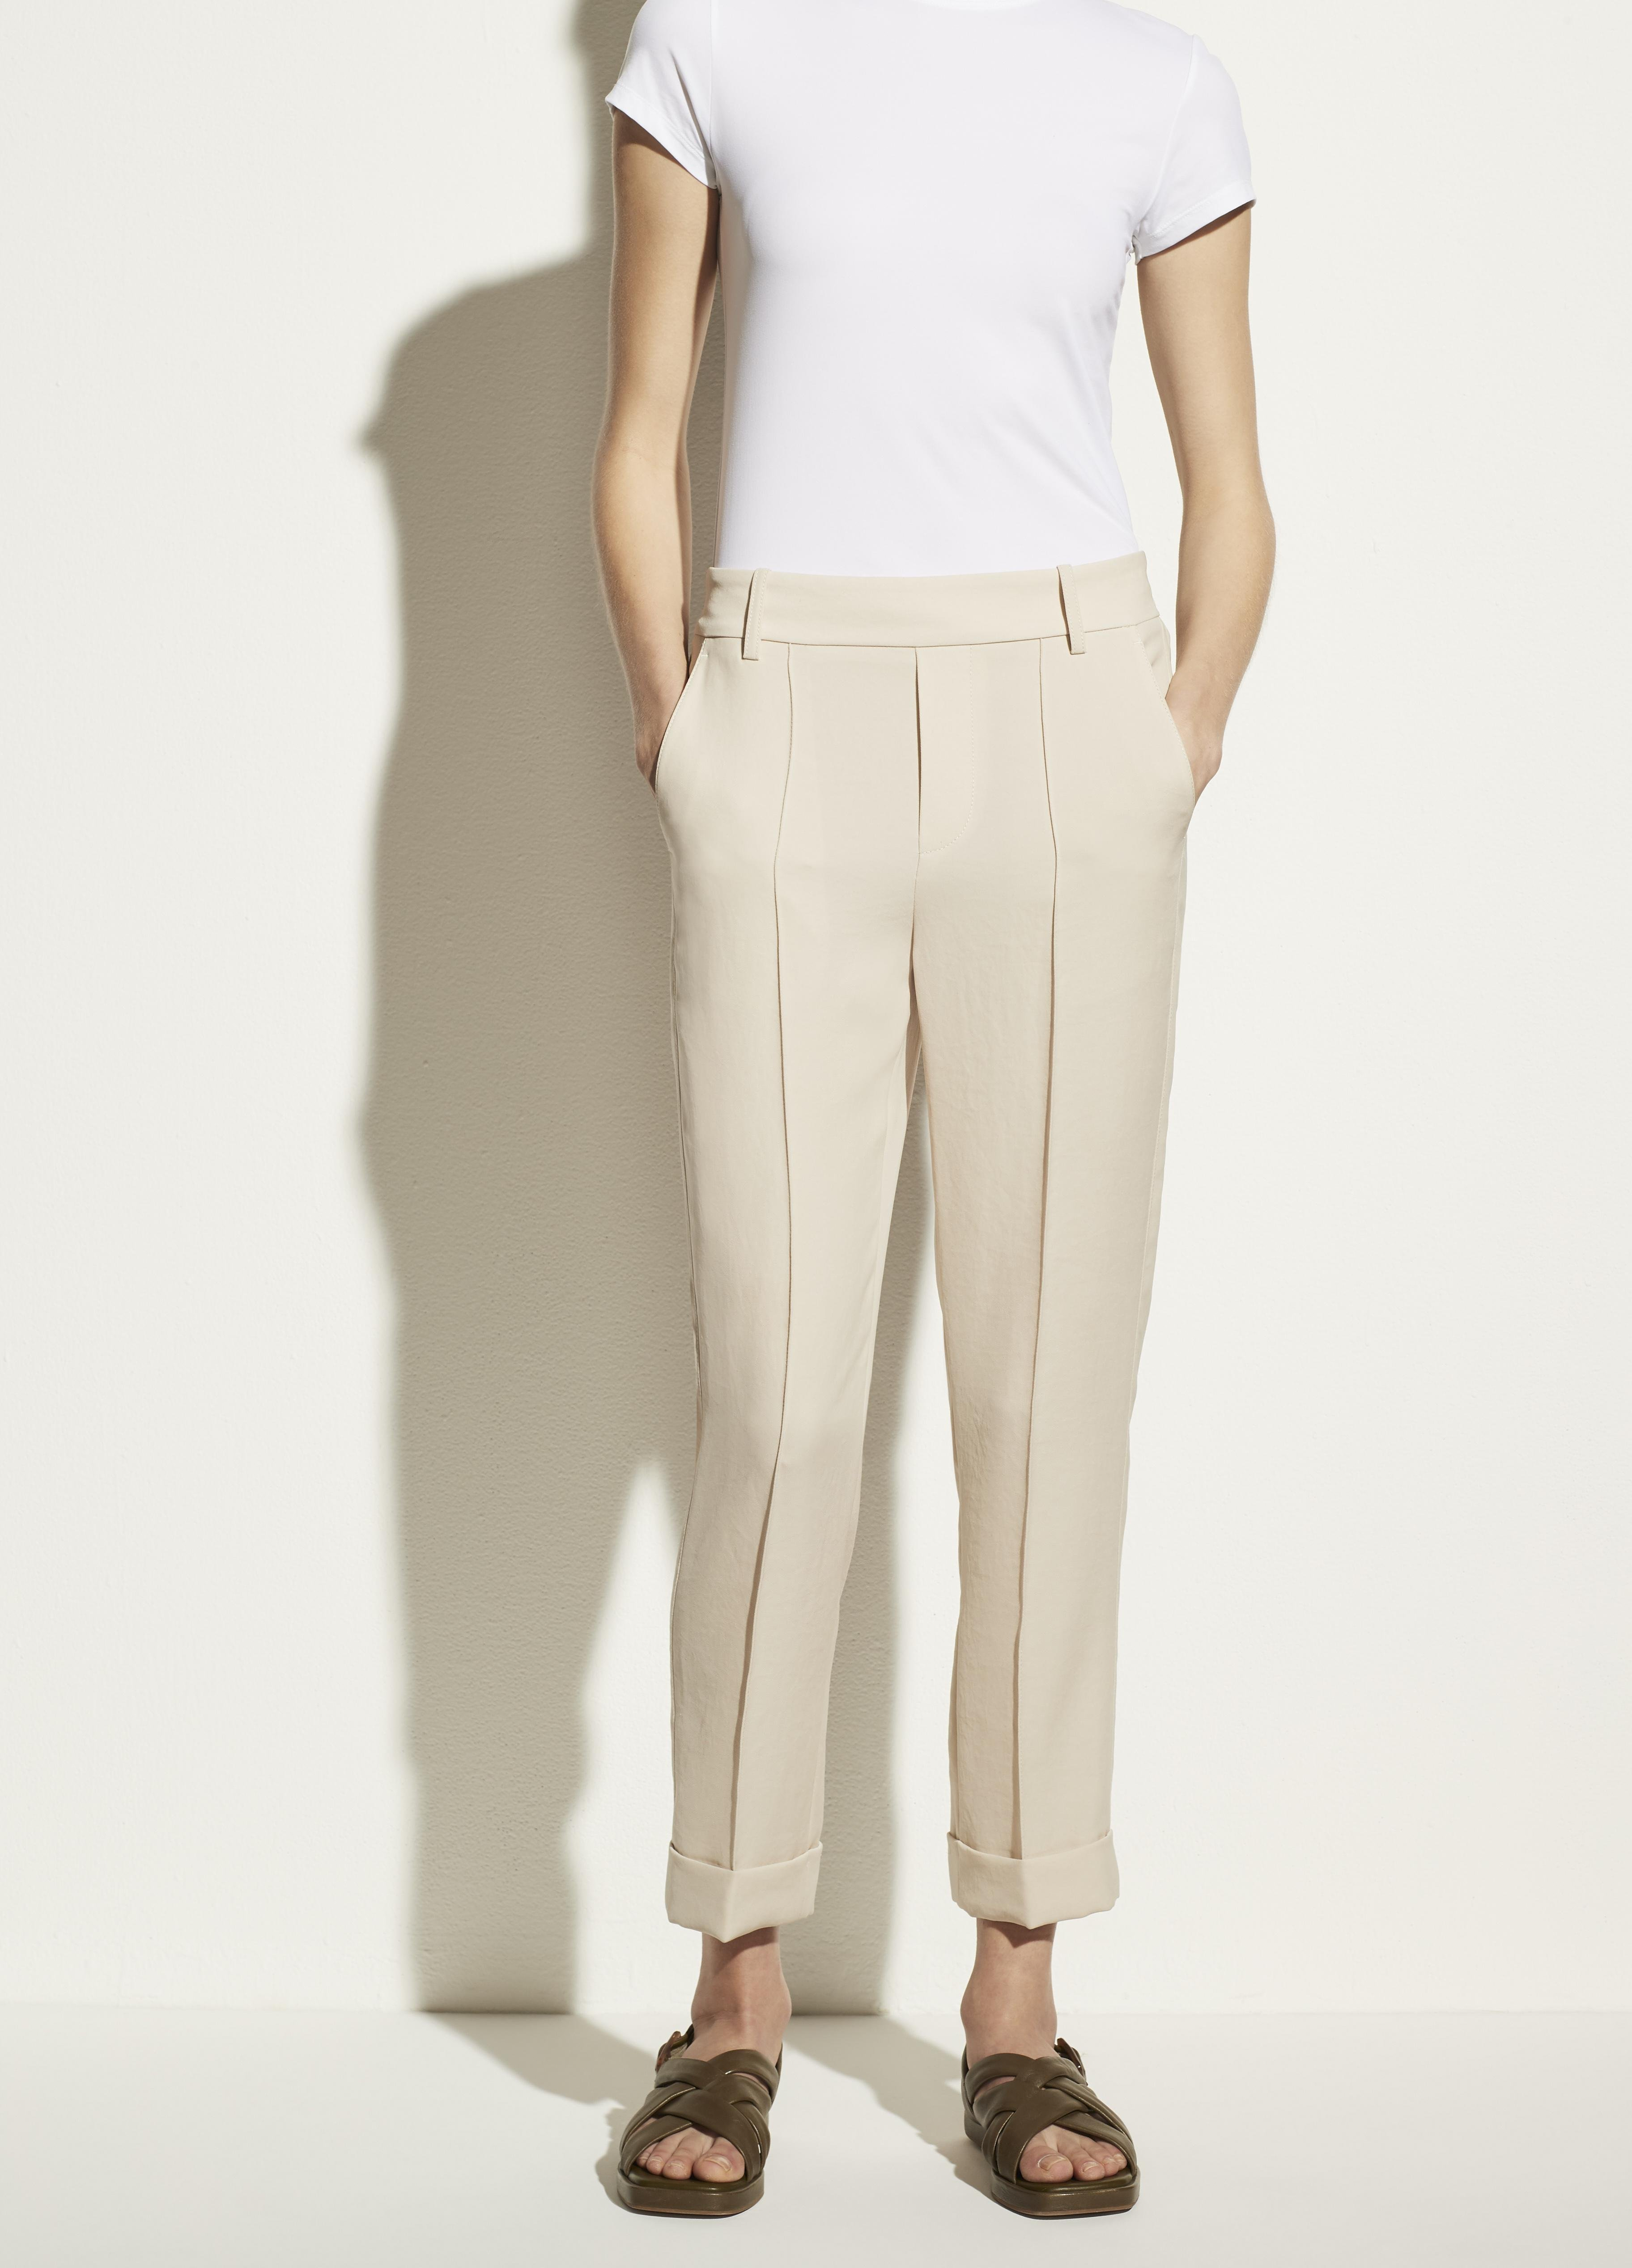 Cuffed Tapered Pull On Pant 1